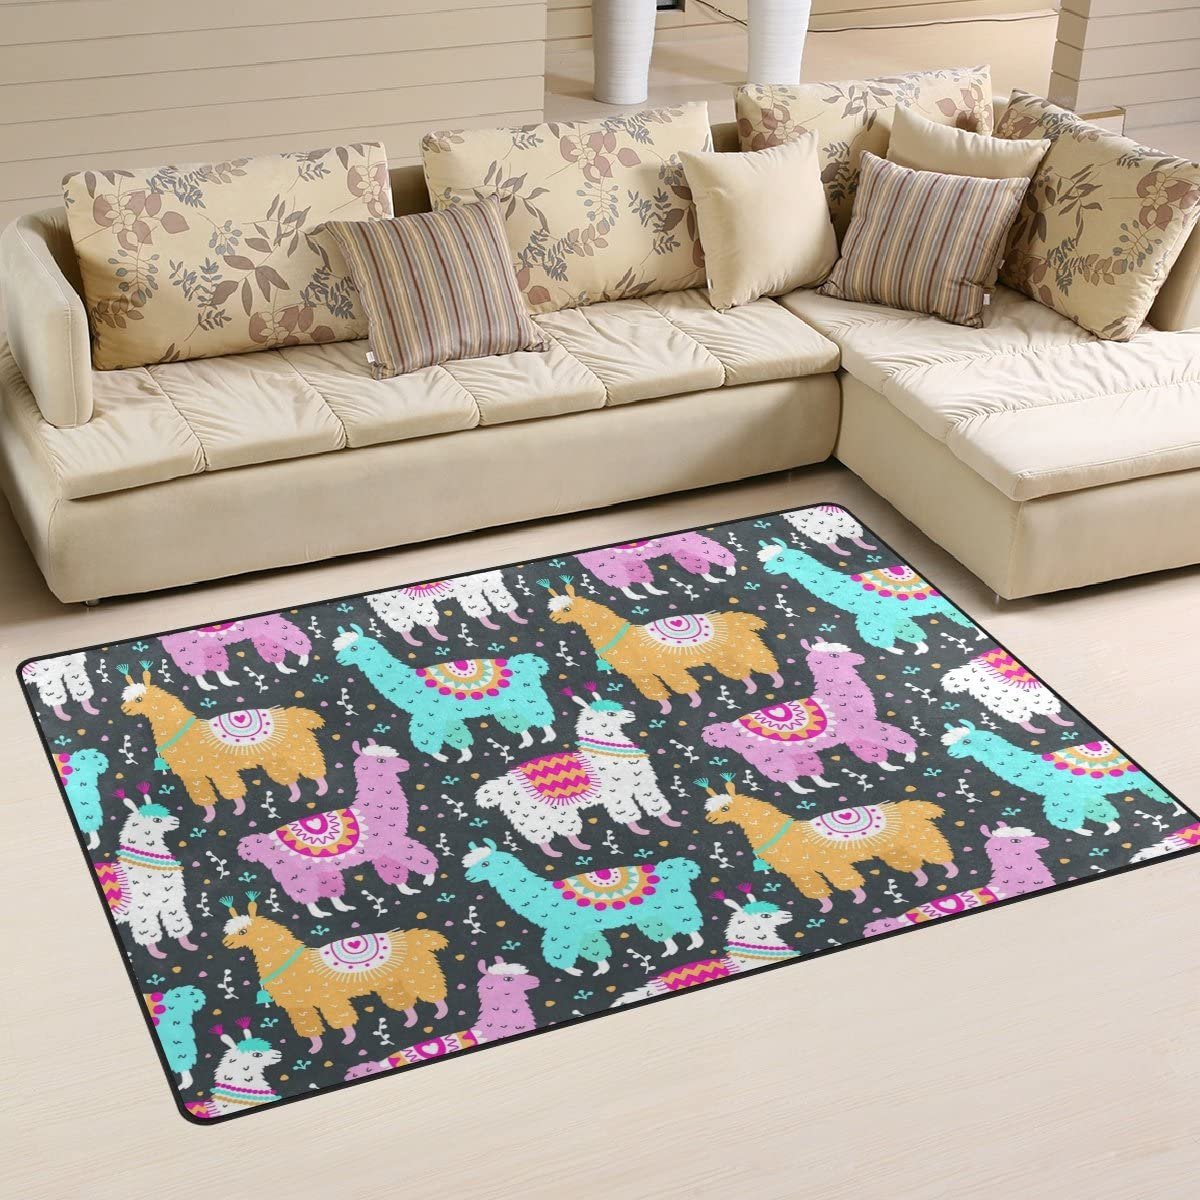 WOZO Fashion Llama Alpaca Unicorn Floral Print Area Rug Rugs Non-Slip Floor Mat Doormats Living Dining Room Bedroom Dorm 60 x 39 inches inches Home Decor